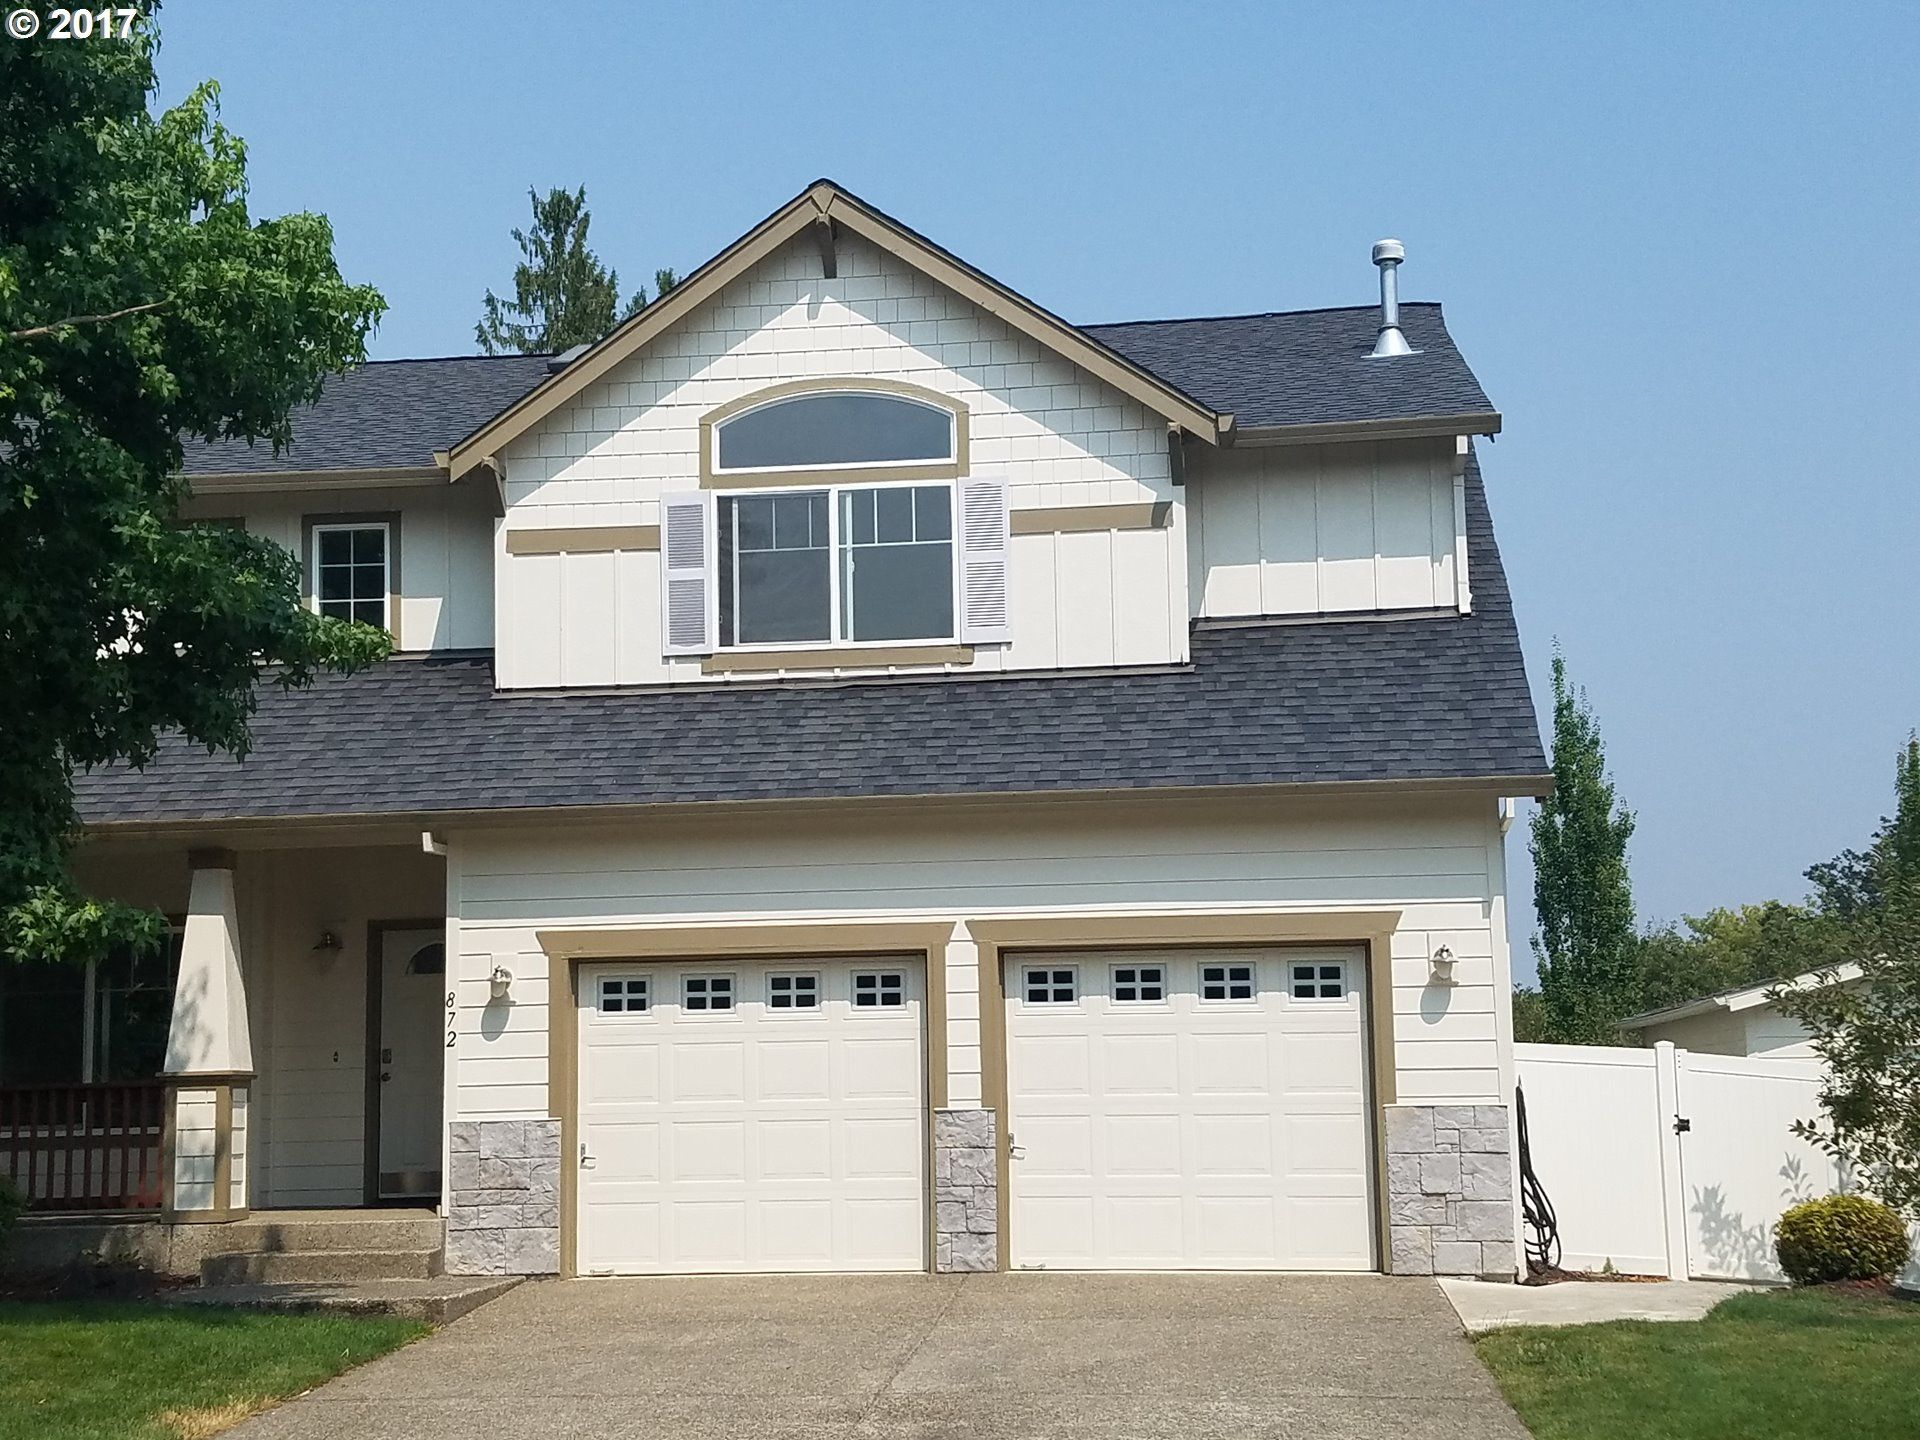 872 N 28th Ave & 872 N 28th Ave Cornelius OR 97113 - Recently Sold | Trulia